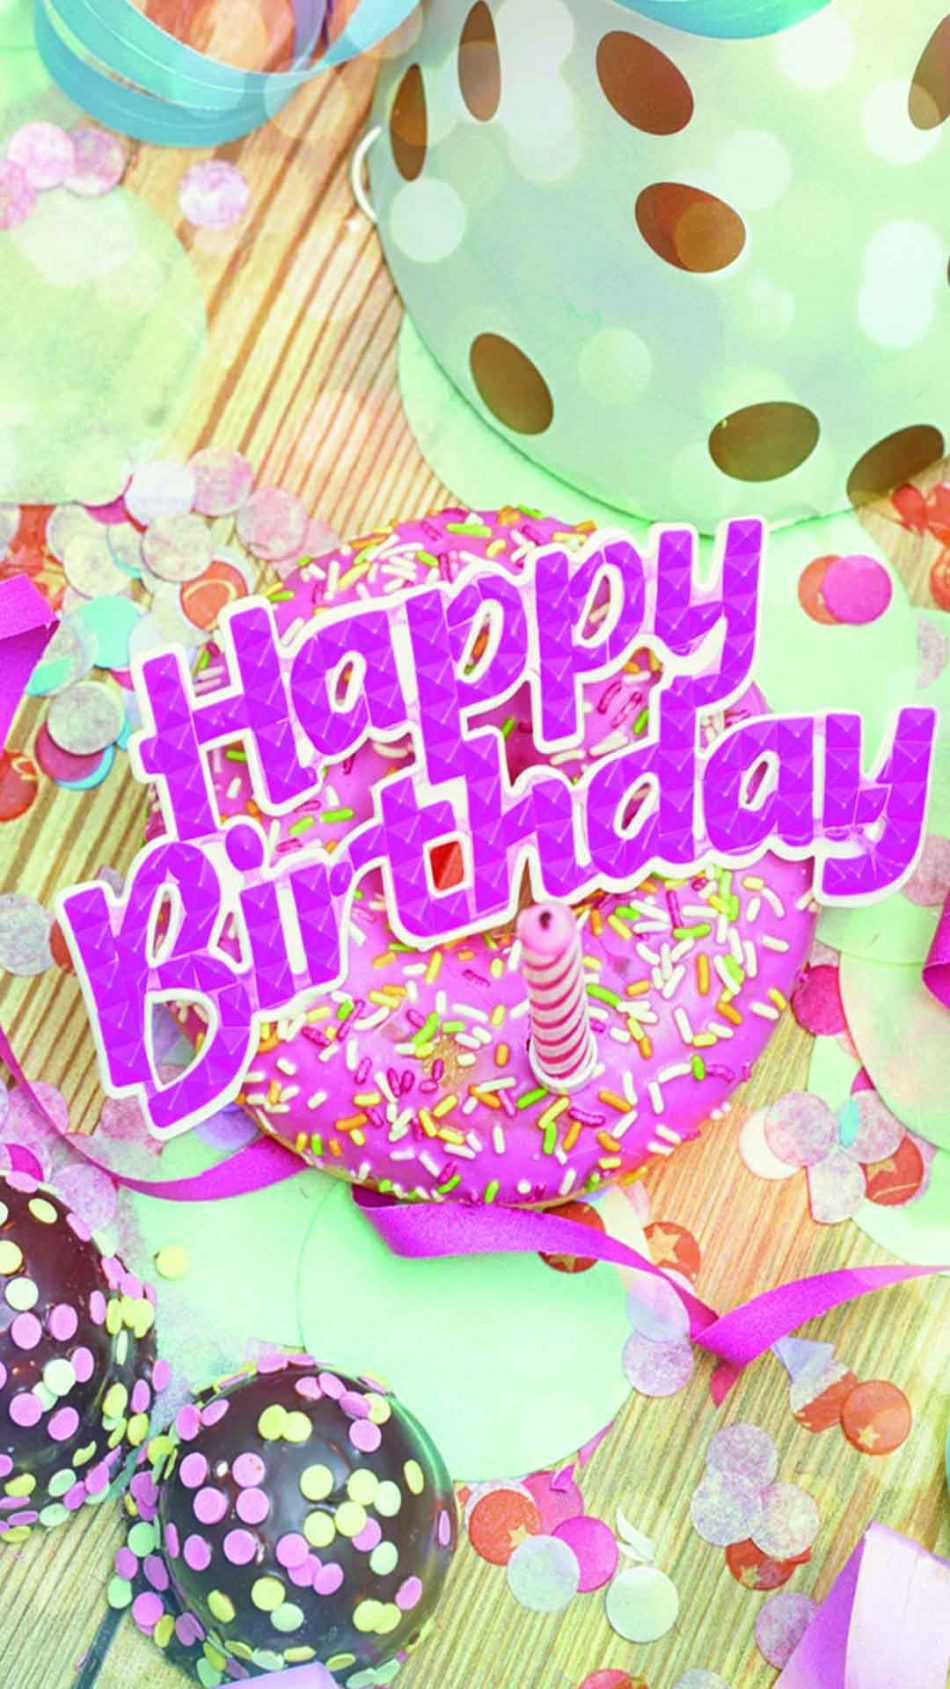 happy birthday image download for mobile ; Happy-Birthday-HD-Mobile-Wallpaper-950x1689